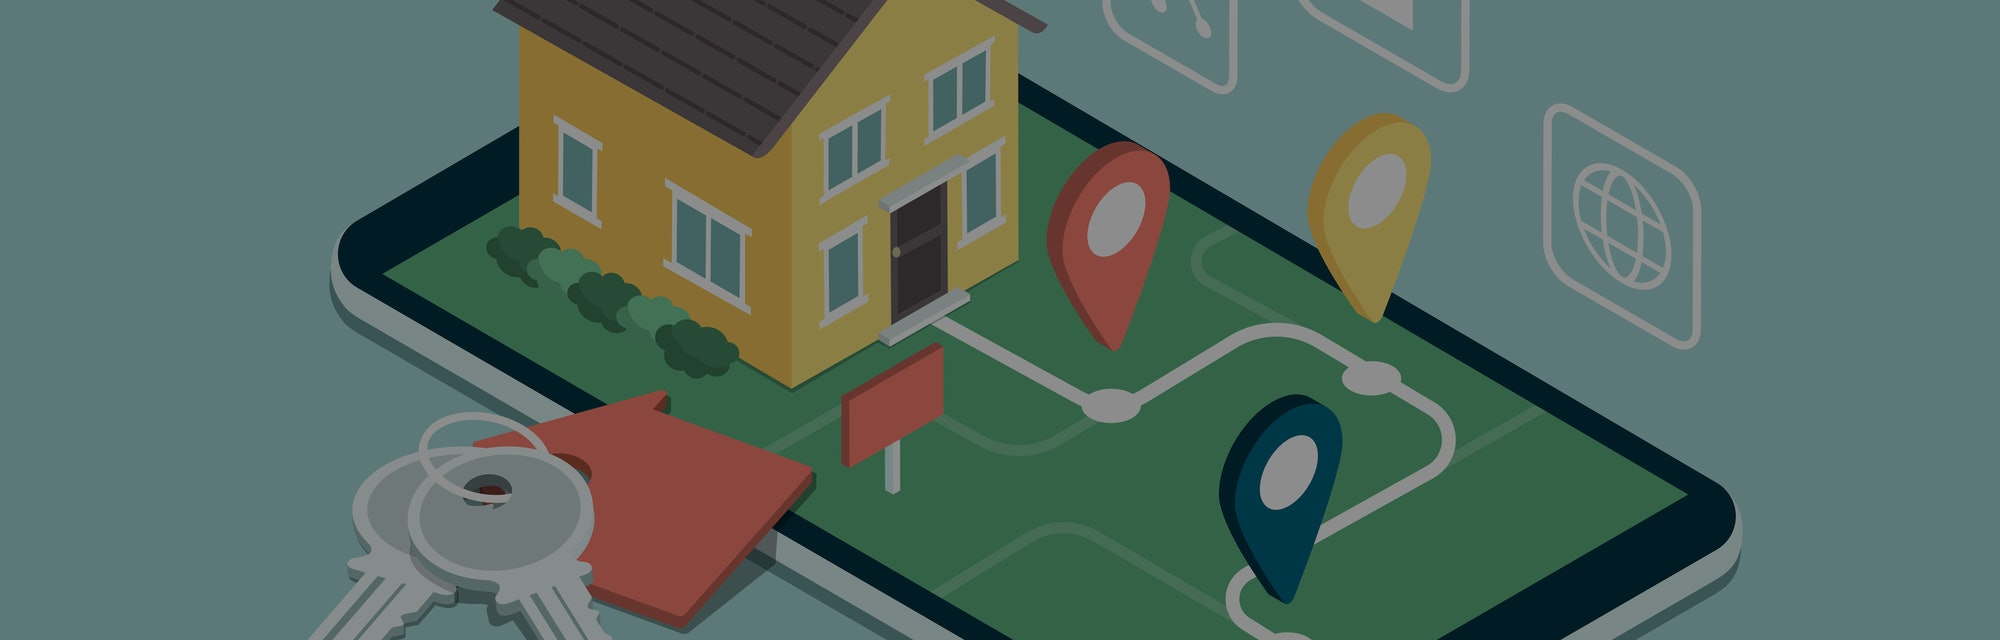 A house for sale can be seen on a smartphone with little location targets popping up at different points. There are signs for maps and a lock in the air.